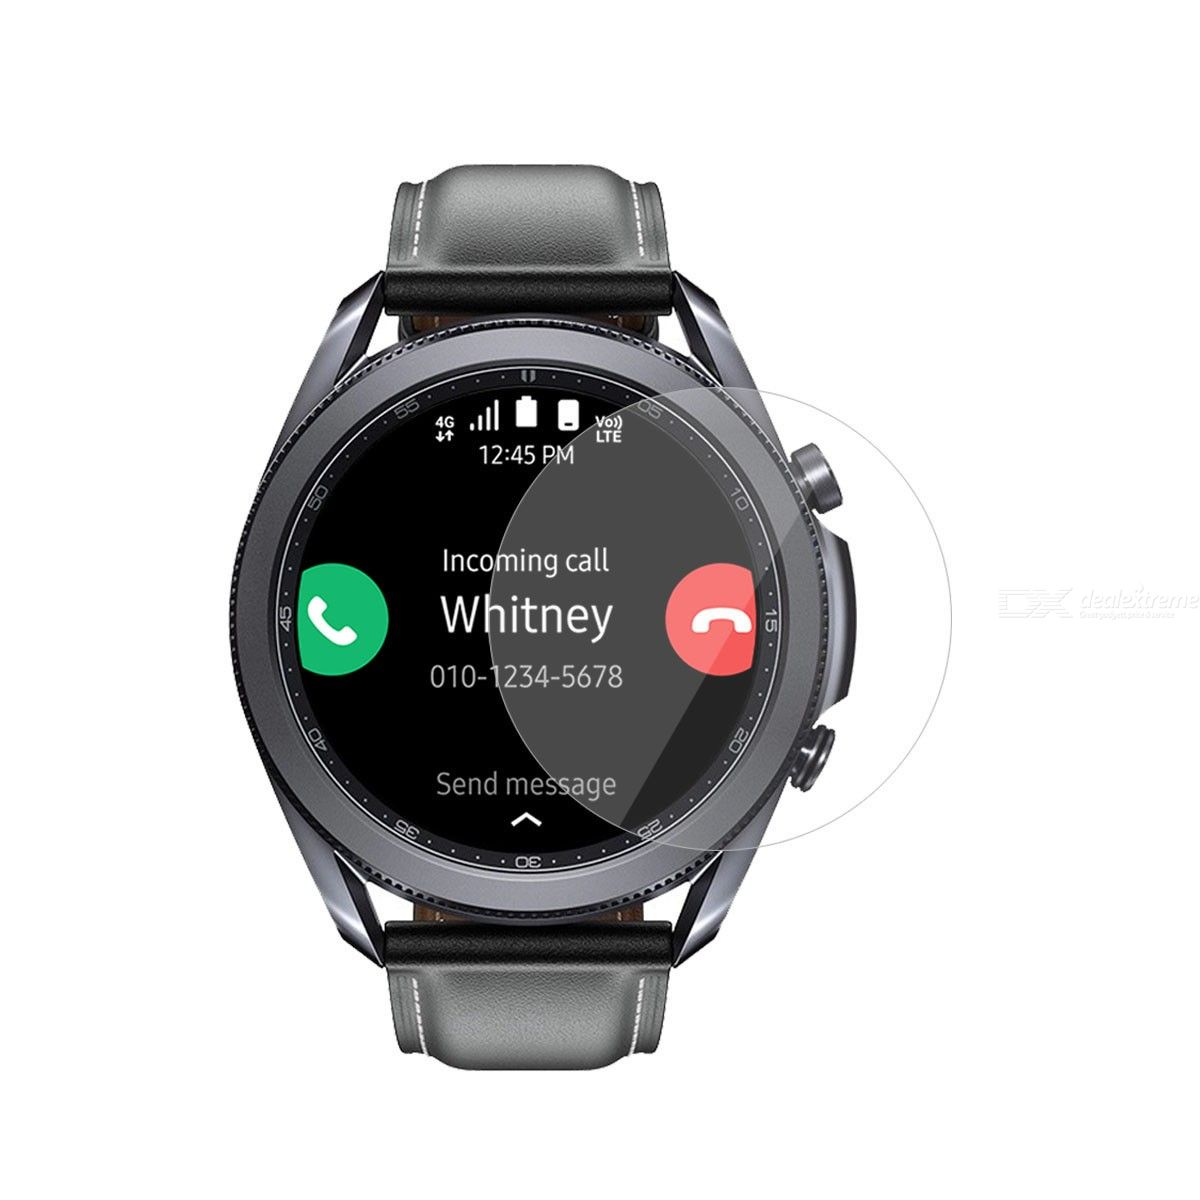 2pcs for samsung galaxy watch3 45mm enkay hat-prince clear hd pet screen protector film